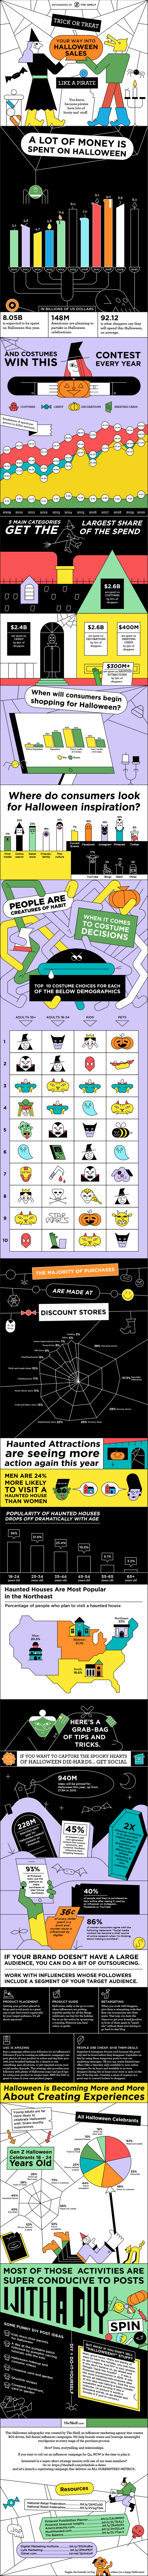 Halloween spending and marketng Infographic